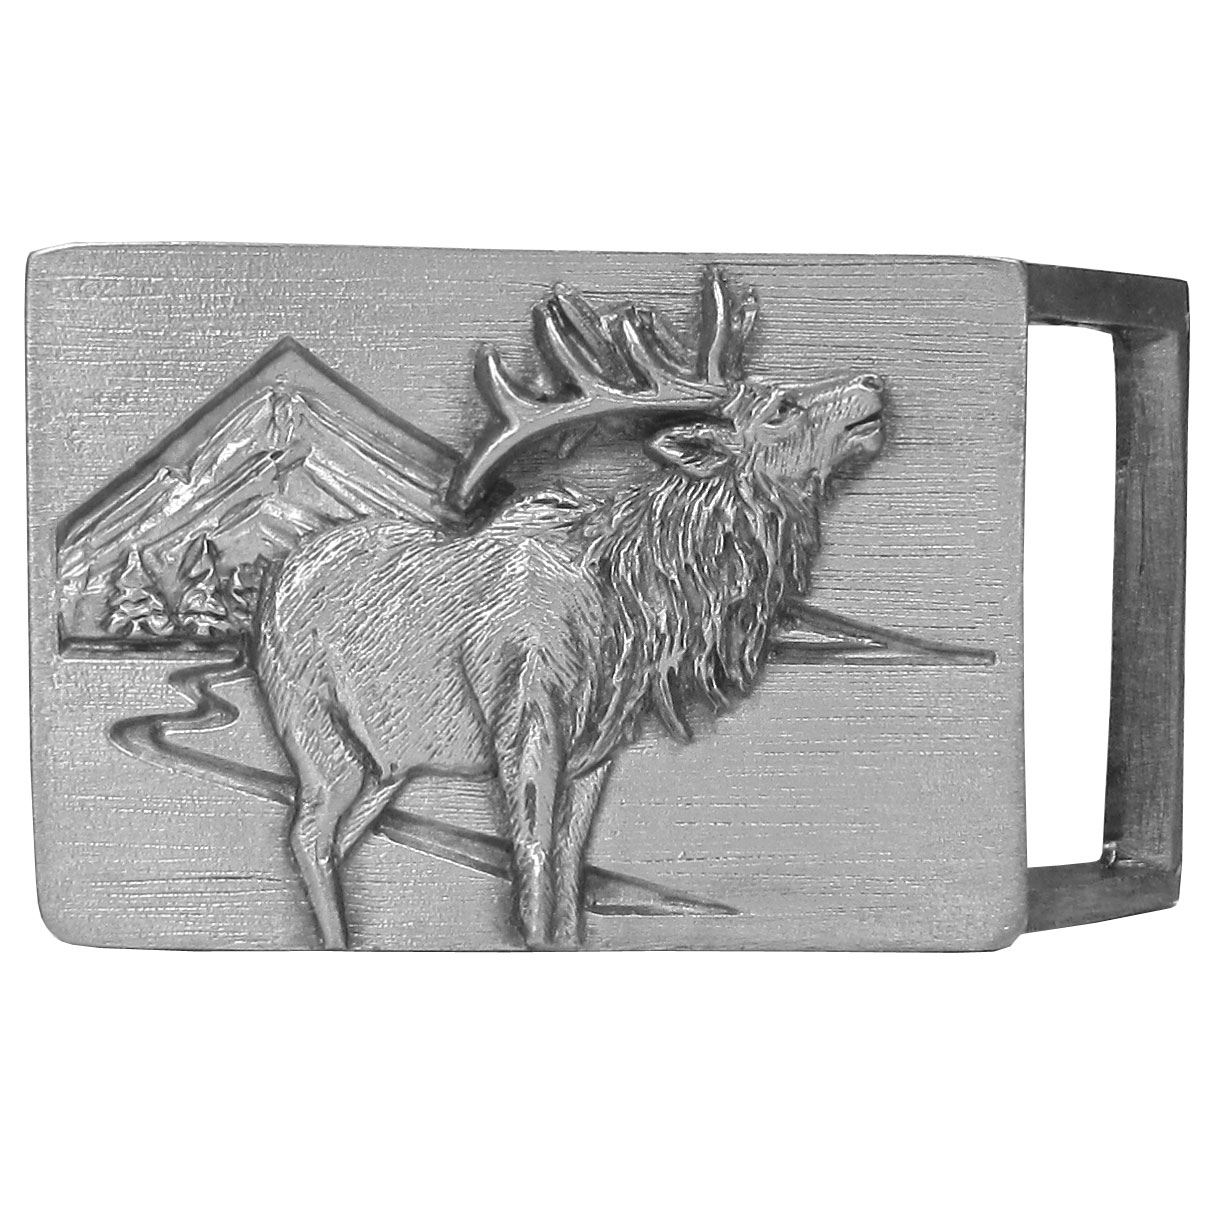 Elk Antiqued Belt Buckle - Finely sculpted and intricately designed belt buckle. Our unique designs often become collector's items.